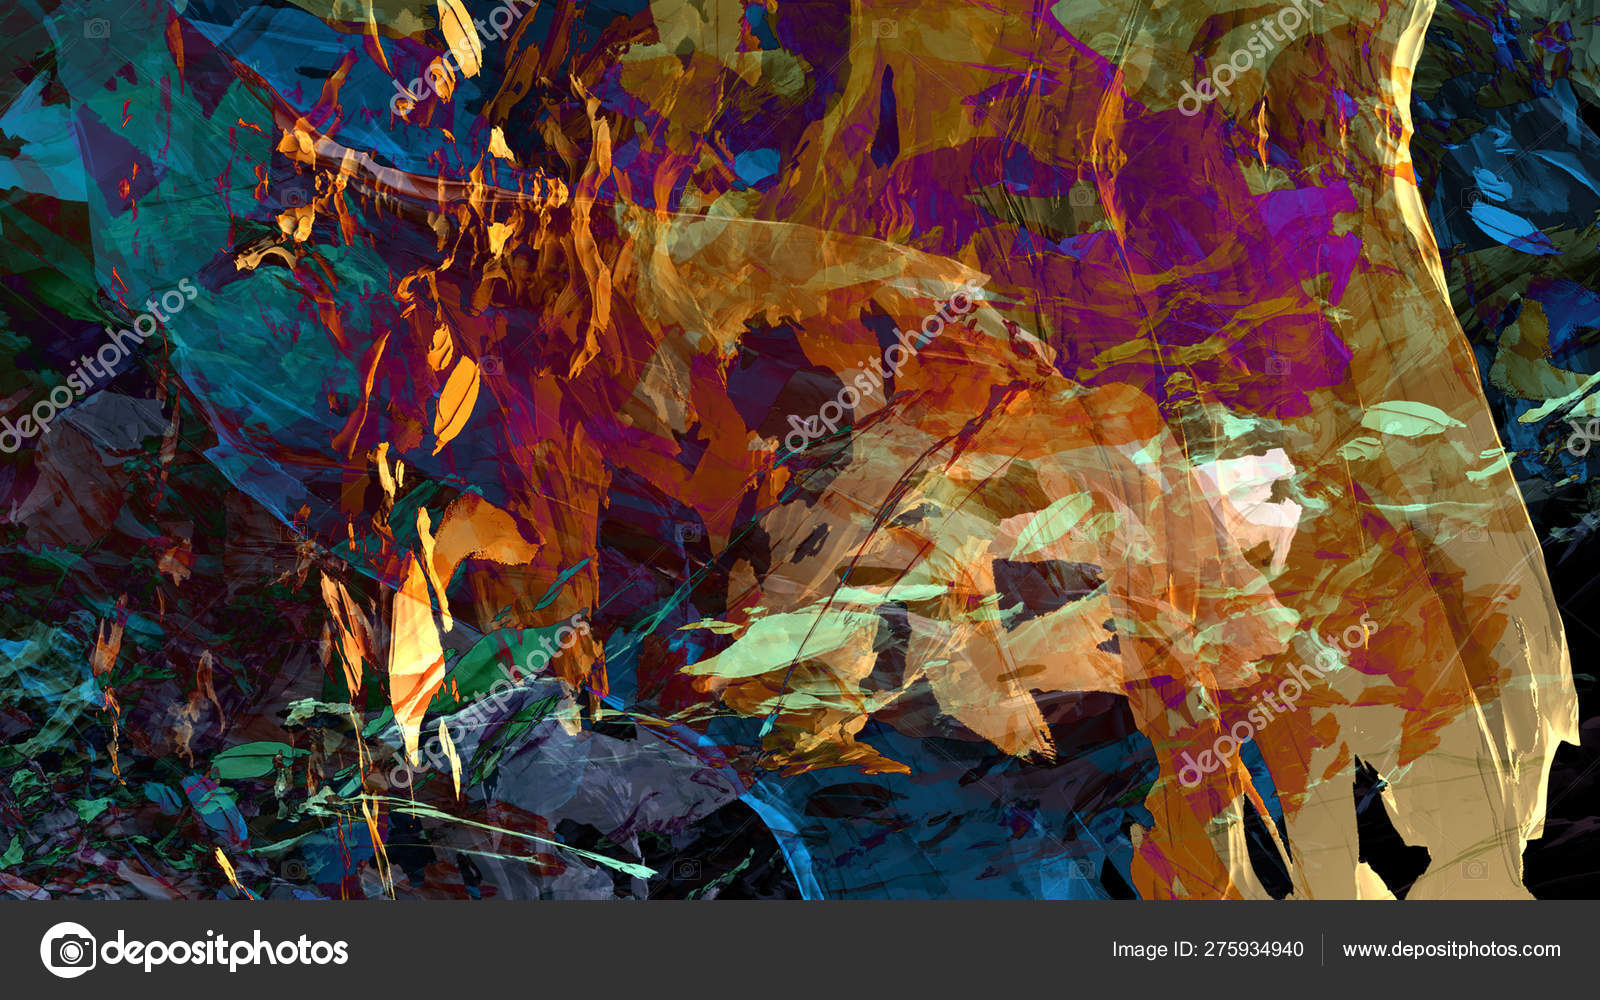 Abstract material colorful texture mountain landscape paint digital illustration psychedelic background